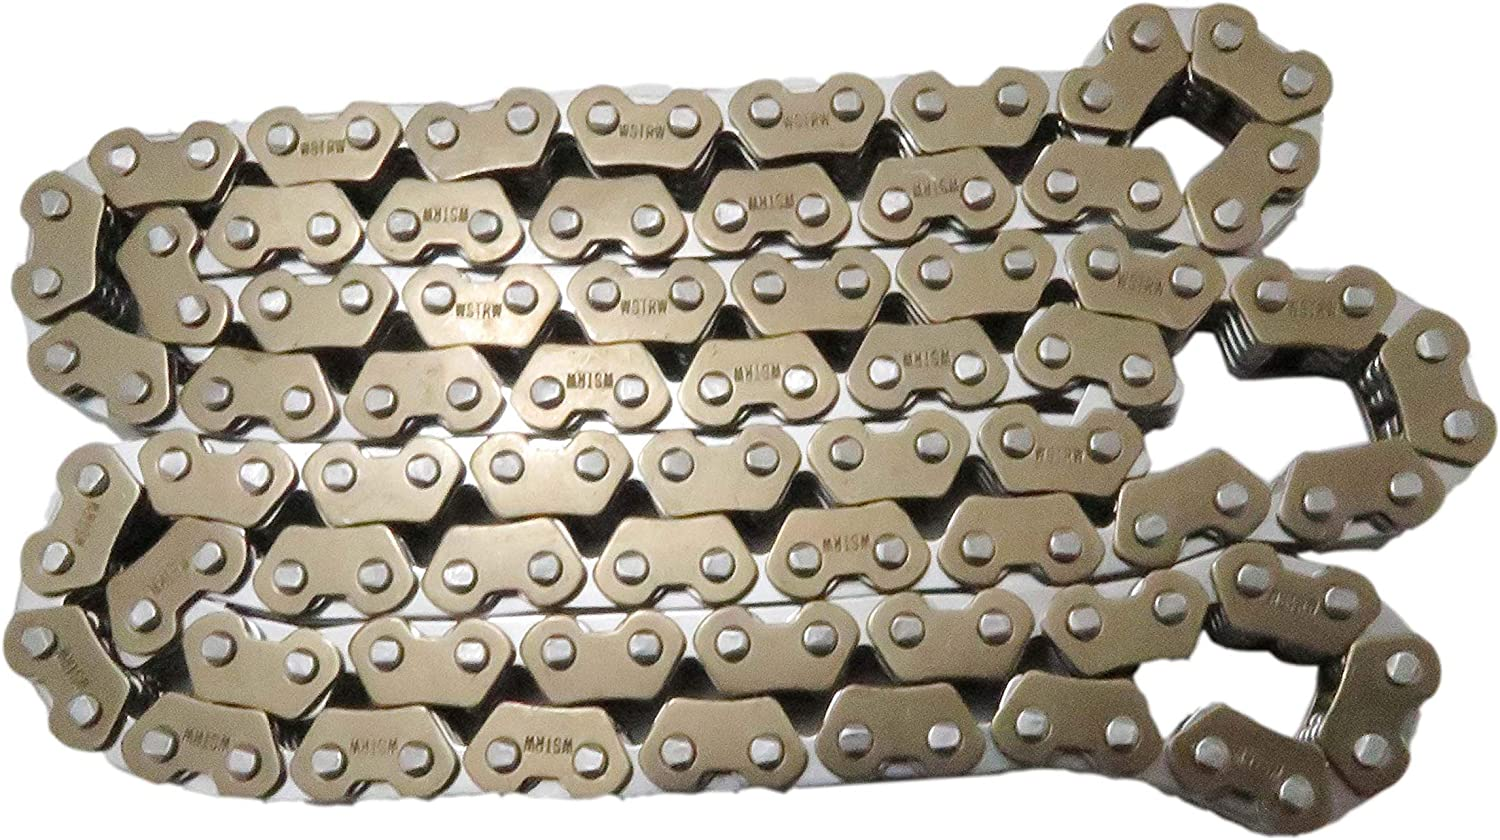 Cam Chain Timing Fit for 2001-2005 Yamaha Raptor 660 /& 1998-2001 Yamaha Grizzly 600